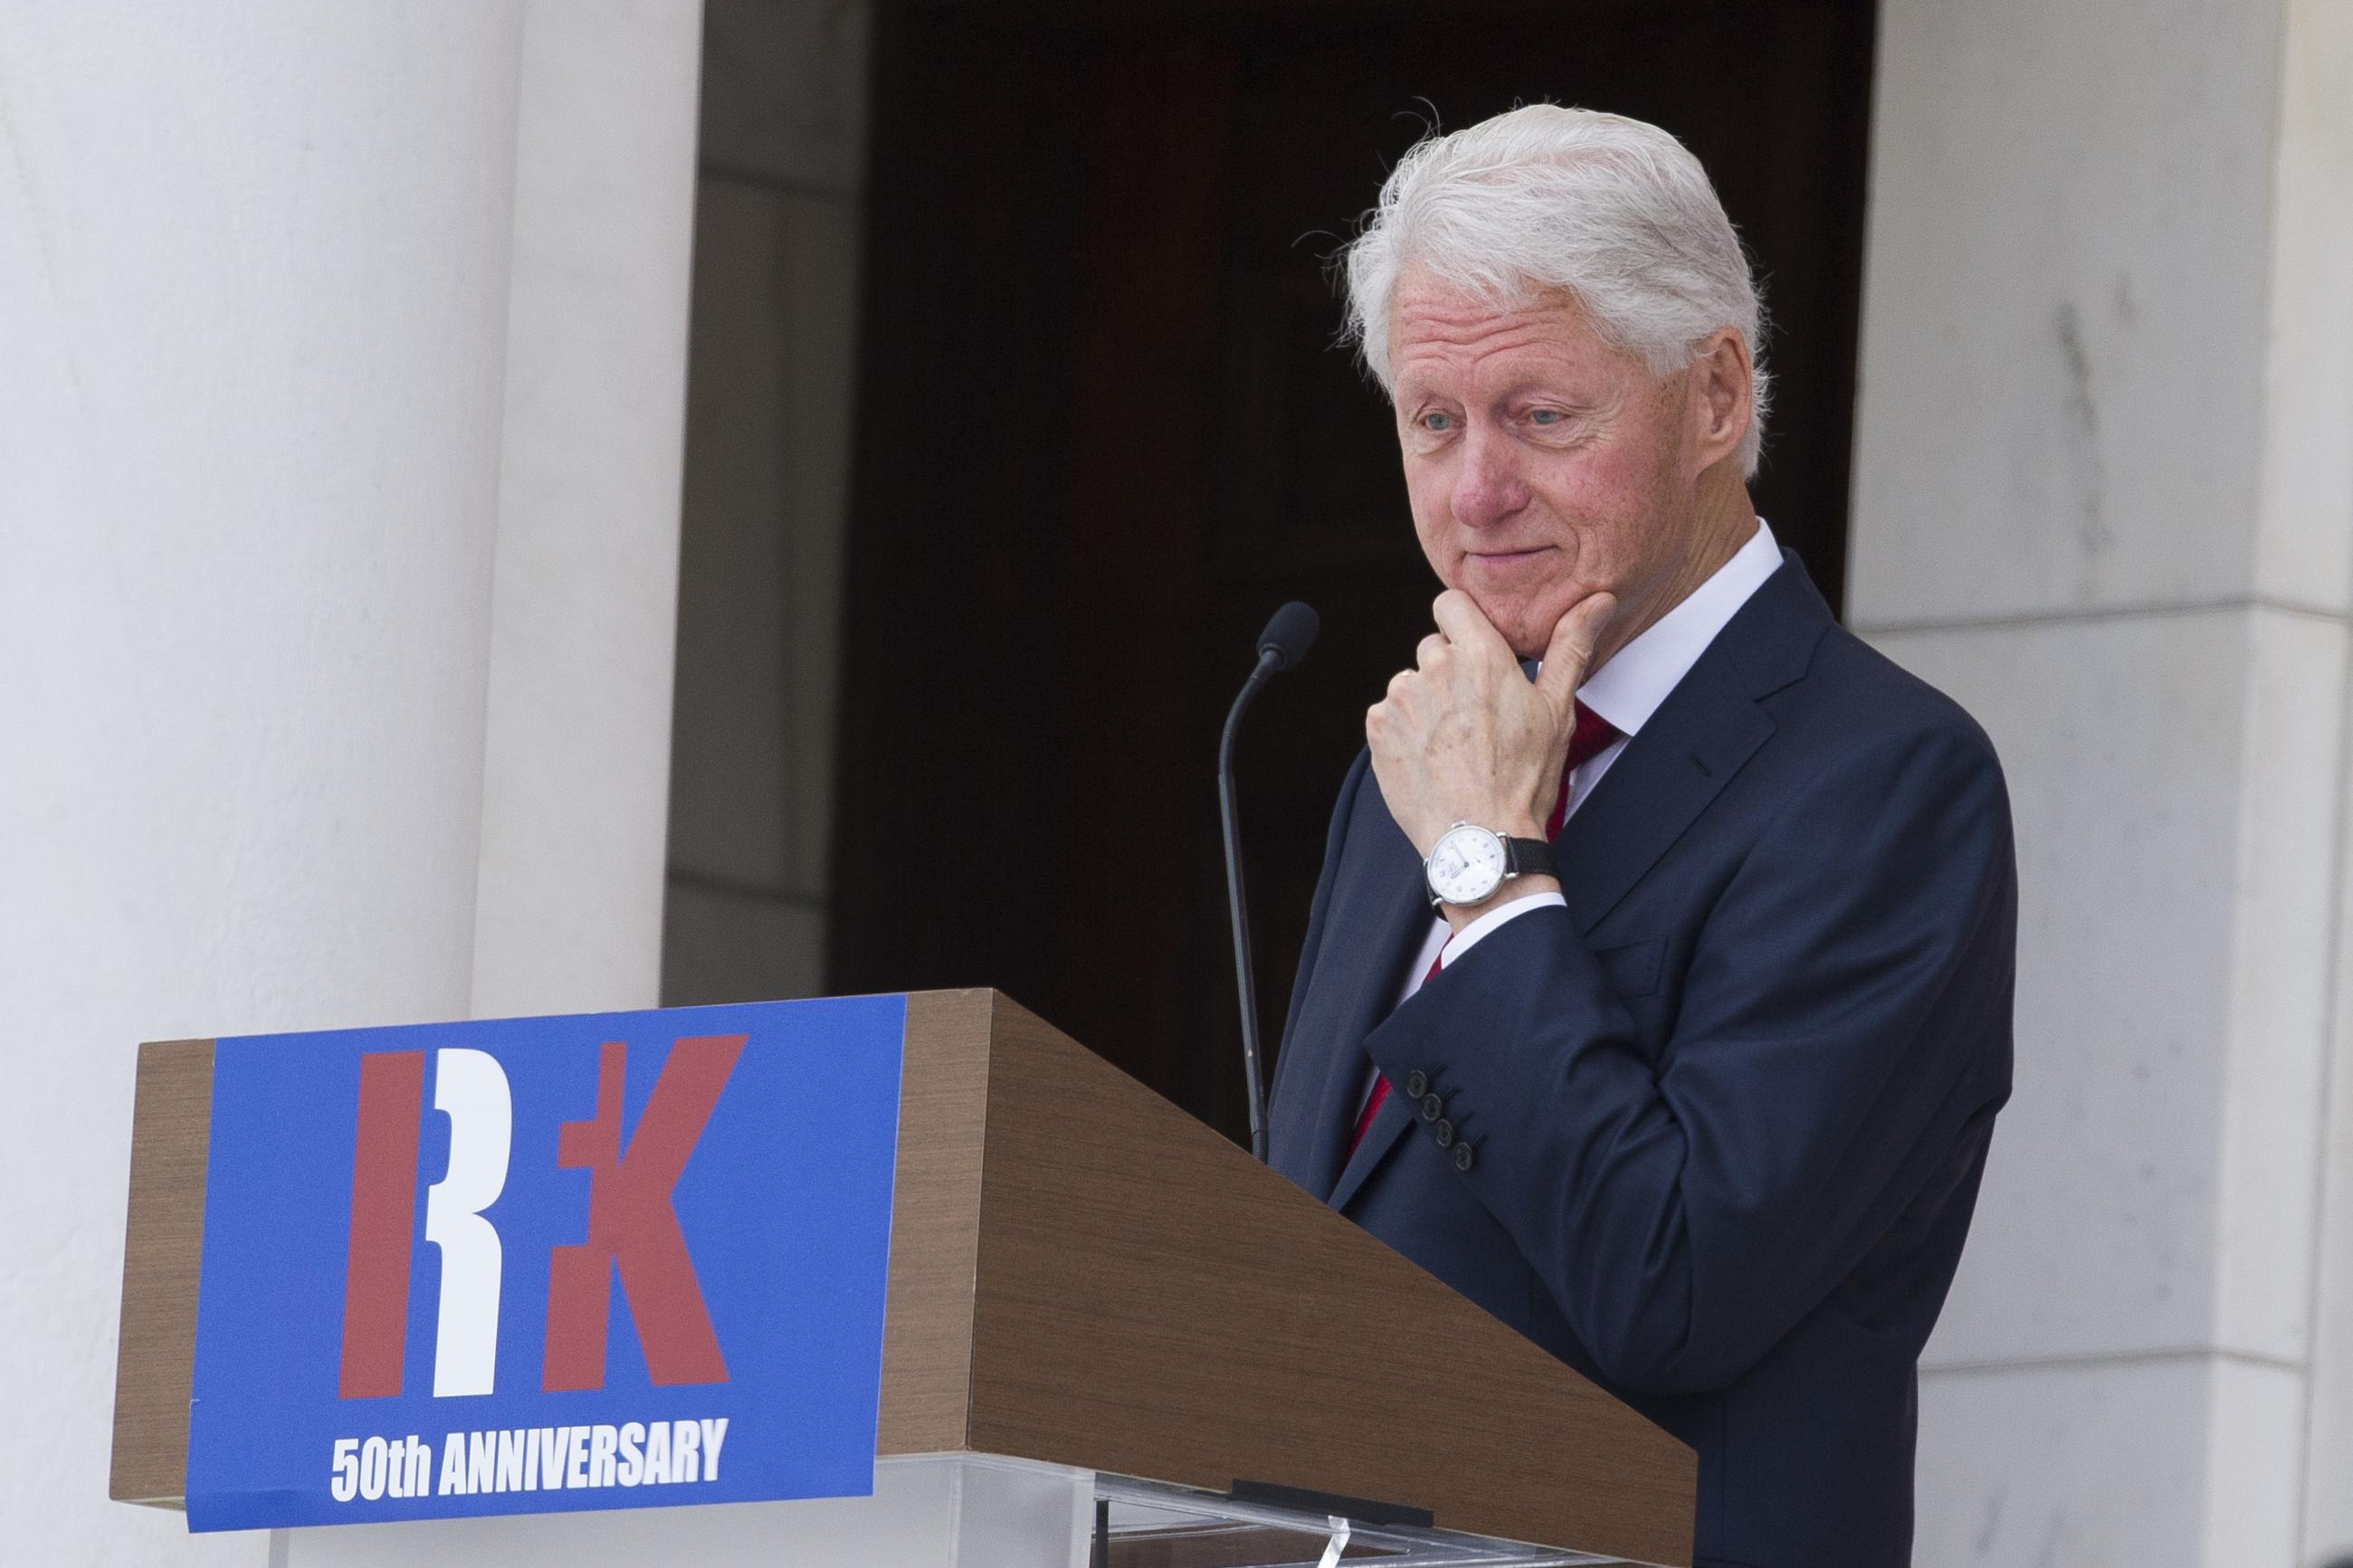 Former President Clinton Speaks During The Celebration Of Life Robert F Kennedy At Arlington National Cemetery On Wednesday AP Photo Cliff Owen